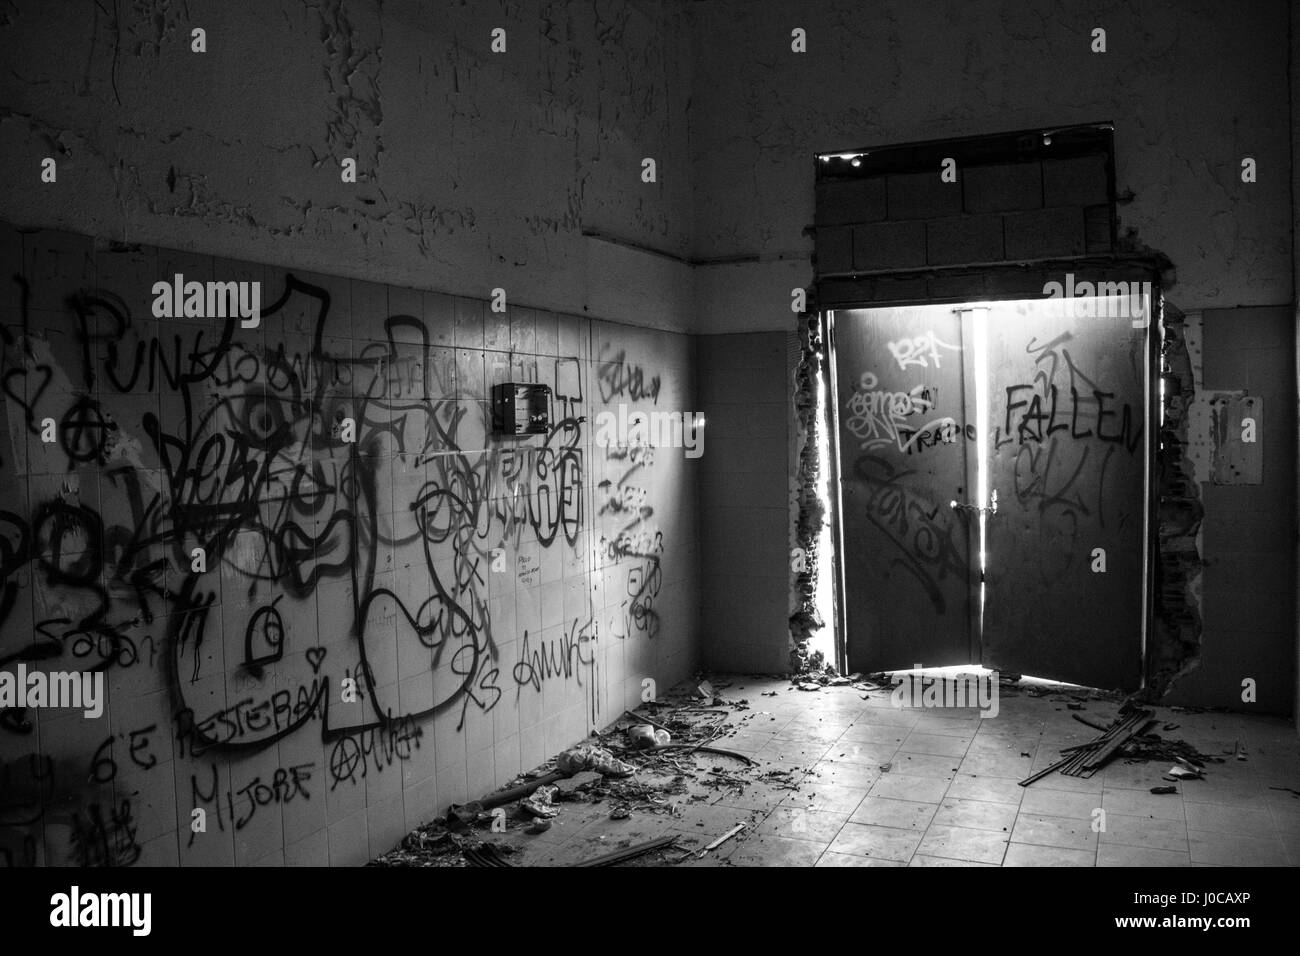 A room in the derelict Hospital on the Poetto beach in Cagliari which has been due for renovation or demolition - Stock Image